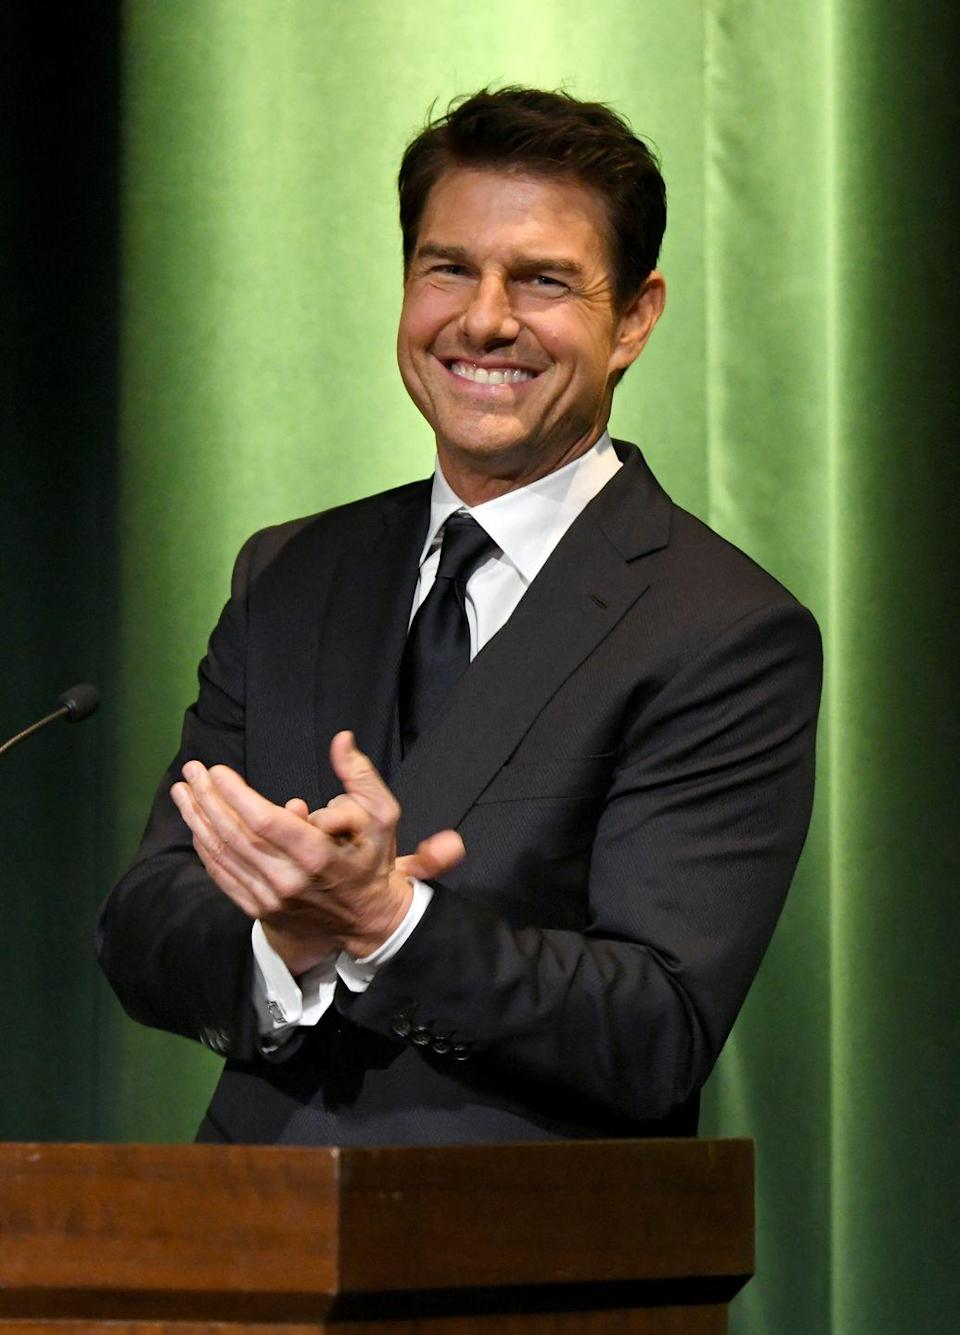 <p>Now, Tom is known for his action-packed <em>Mission Impossible </em>franchise, which he first started filming back in 1996. There are a whopping eight (!) of them, and the last one to come out was in 2018.</p>